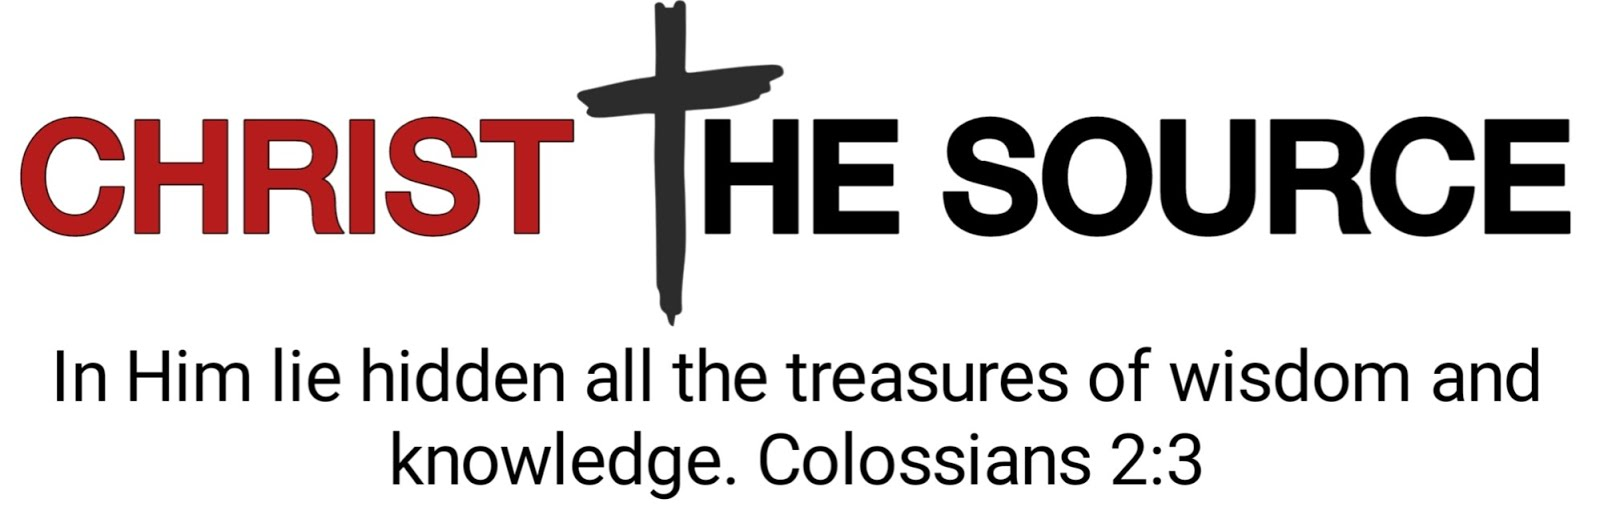 CHRIST THE SOURCE